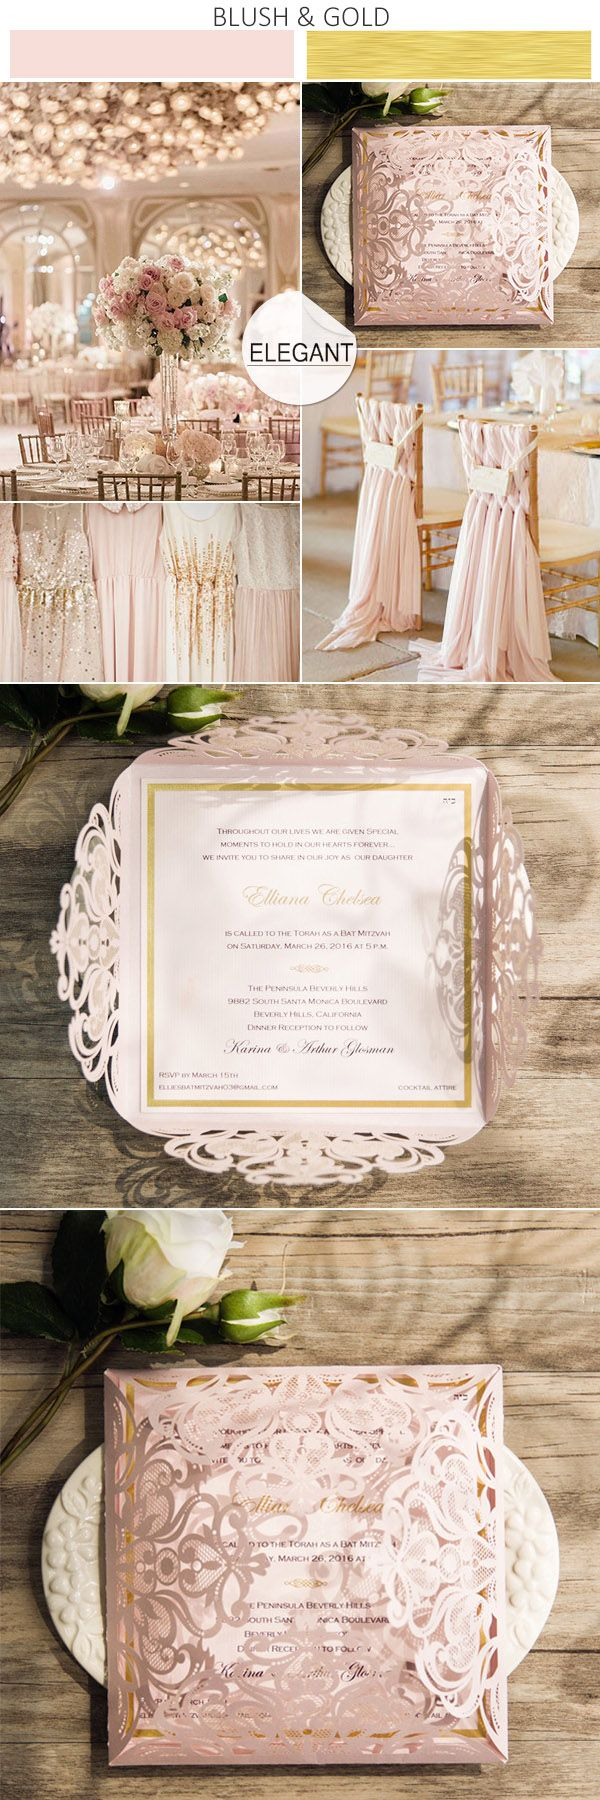 best 25 gold wedding invitations ideas on pinterest laser cut wedding stationery gold invitations and metallic wedding invitation ideas - White And Gold Wedding Invitations